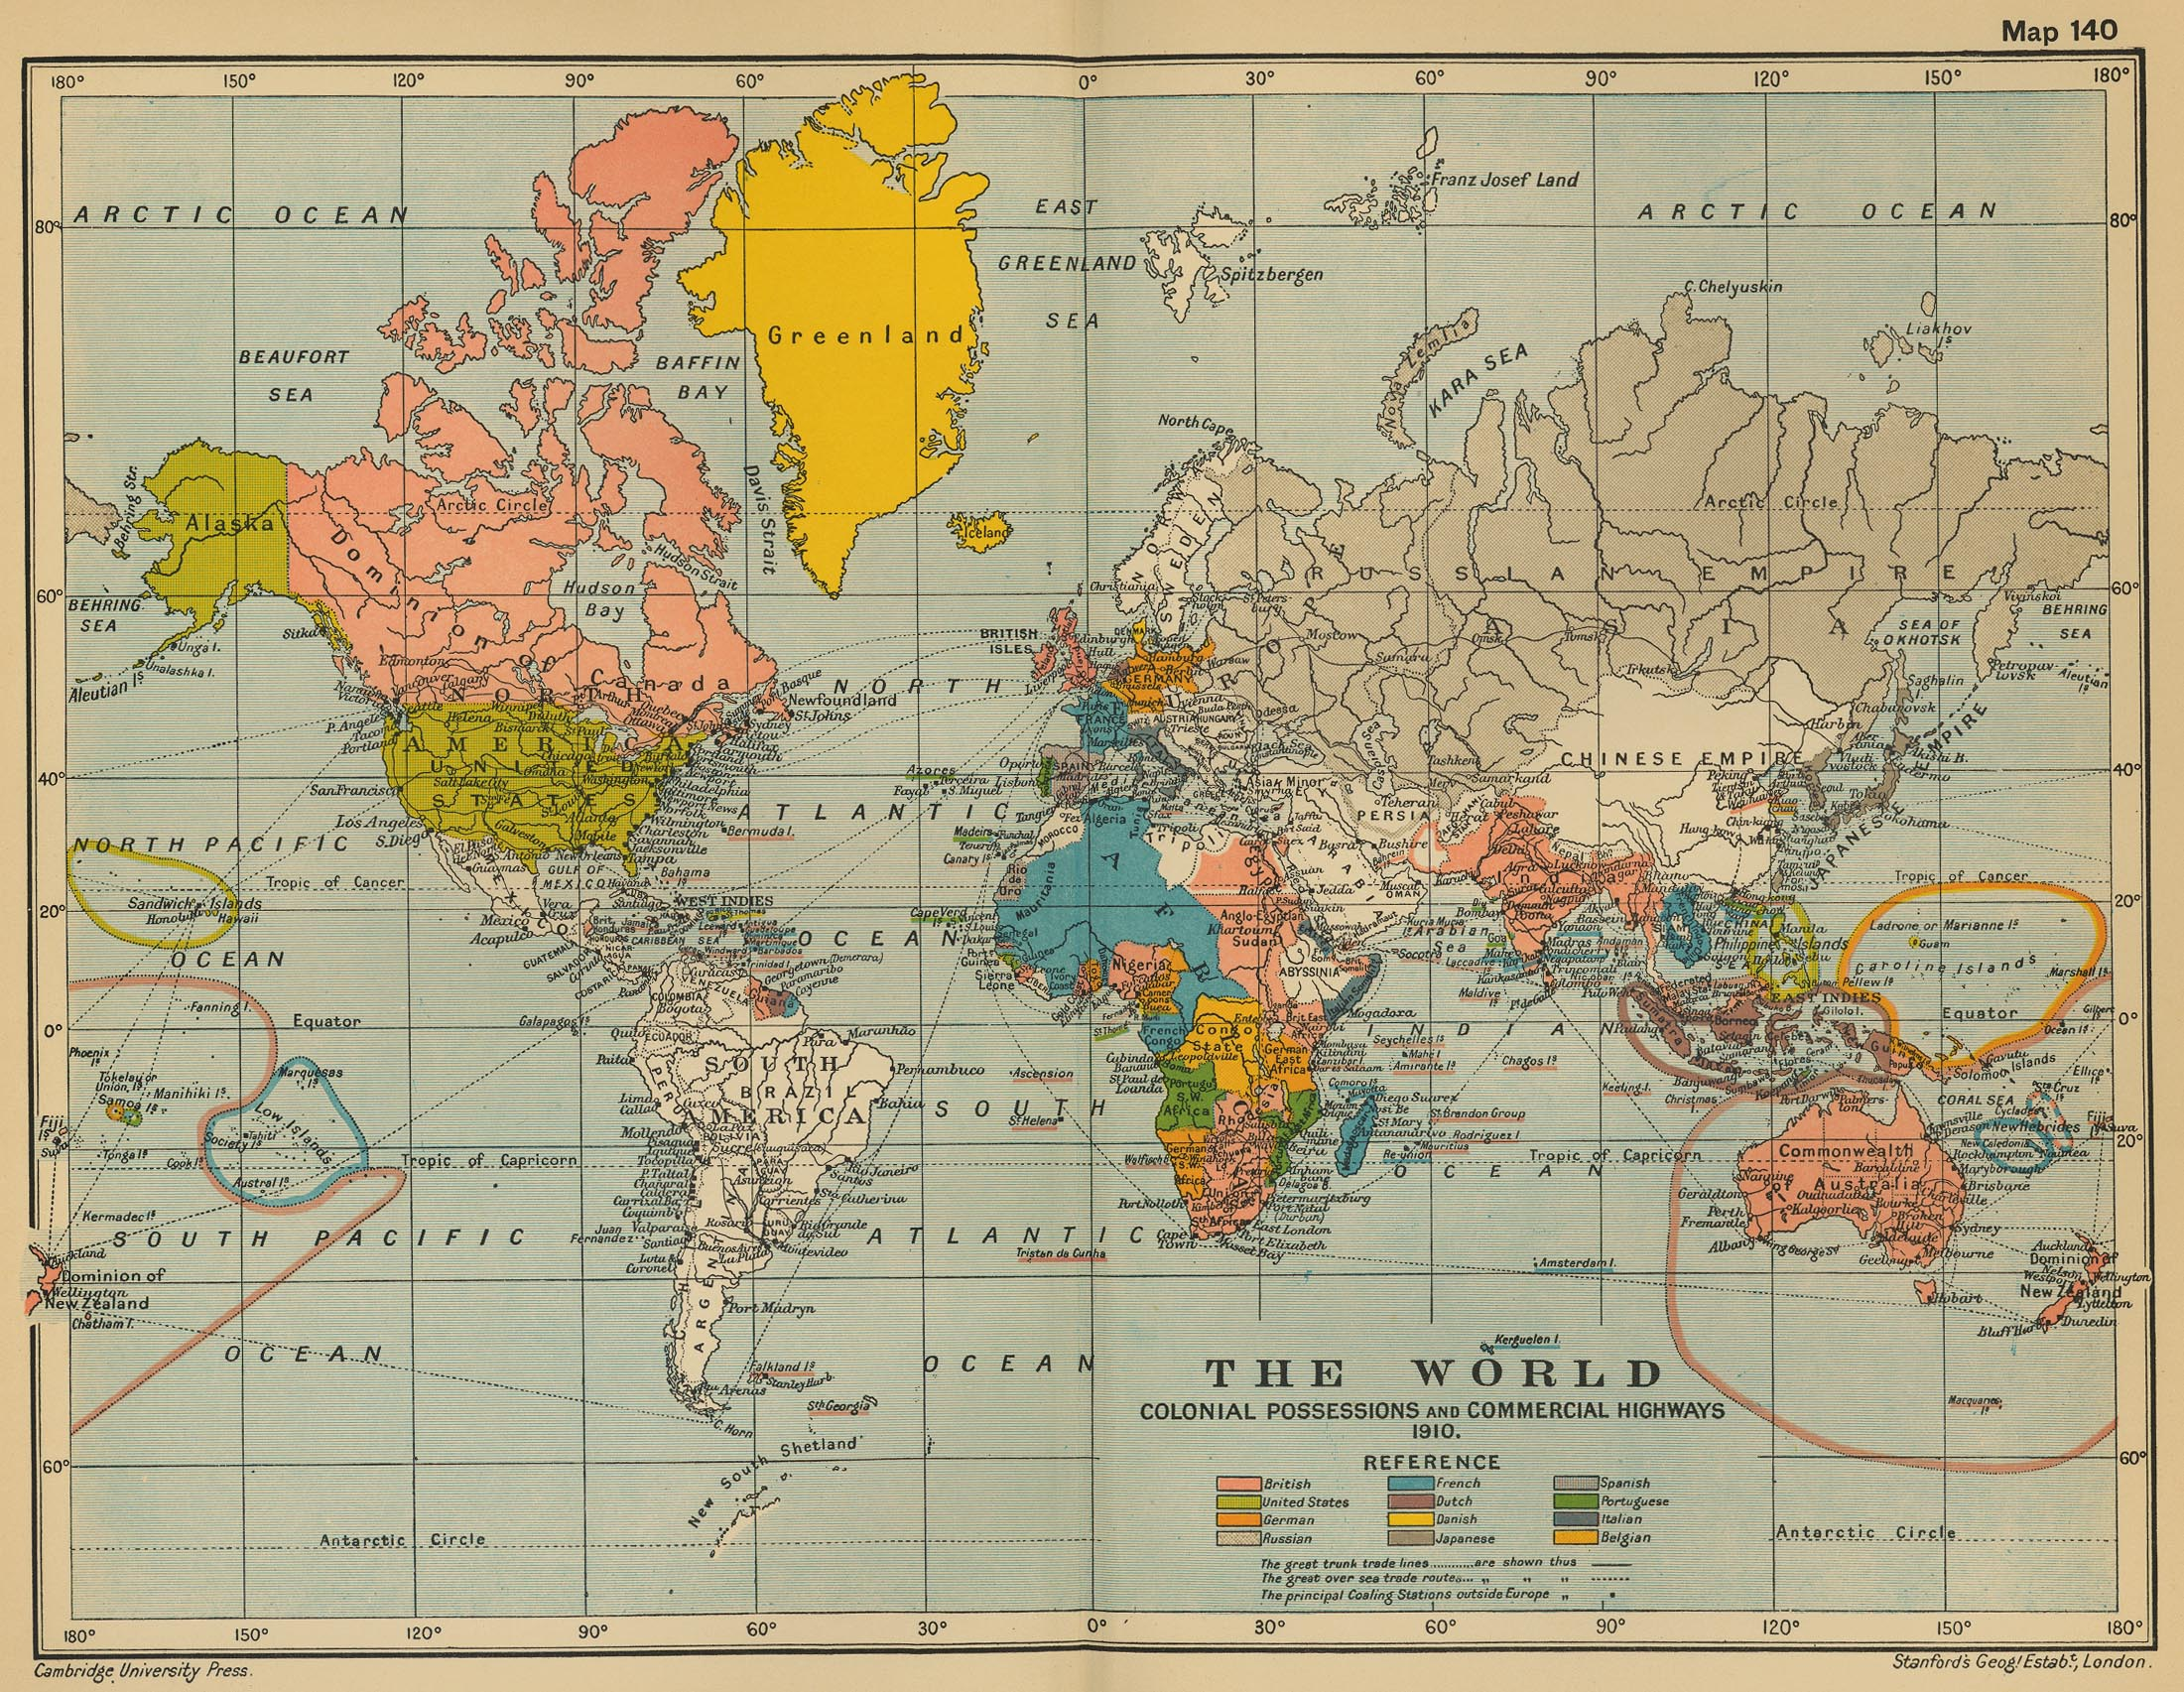 World historical maps perry castaeda map collection ut library the world colonial possessions and commercial highways 1910 gumiabroncs Images